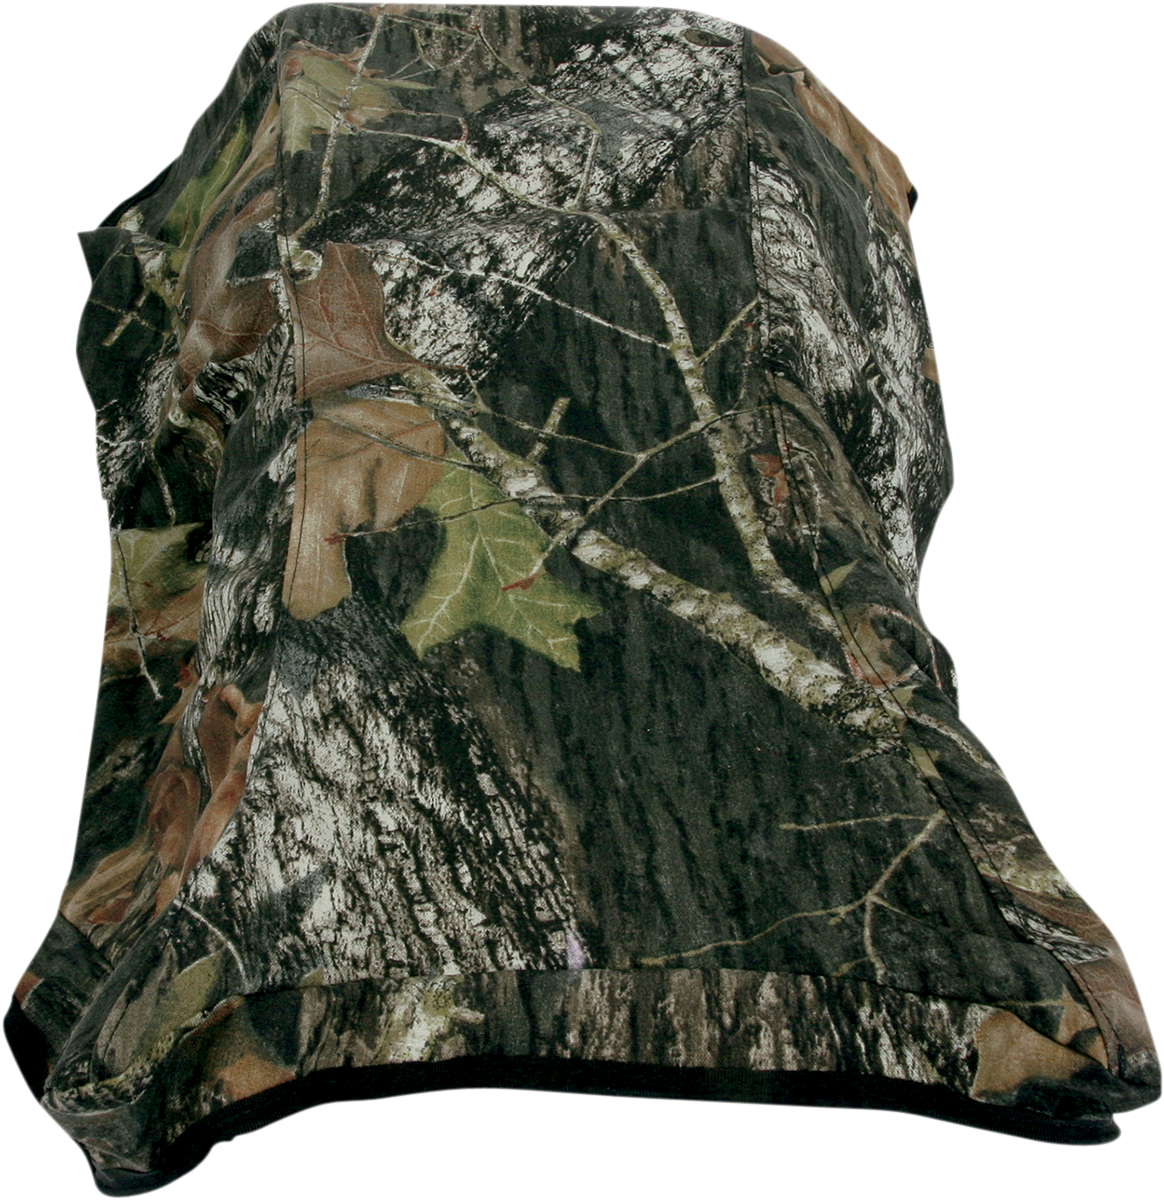 Moose Utility Camo ATV Cordura Seat Cover for 05-18 Suzuki LT-A KingQuad 500